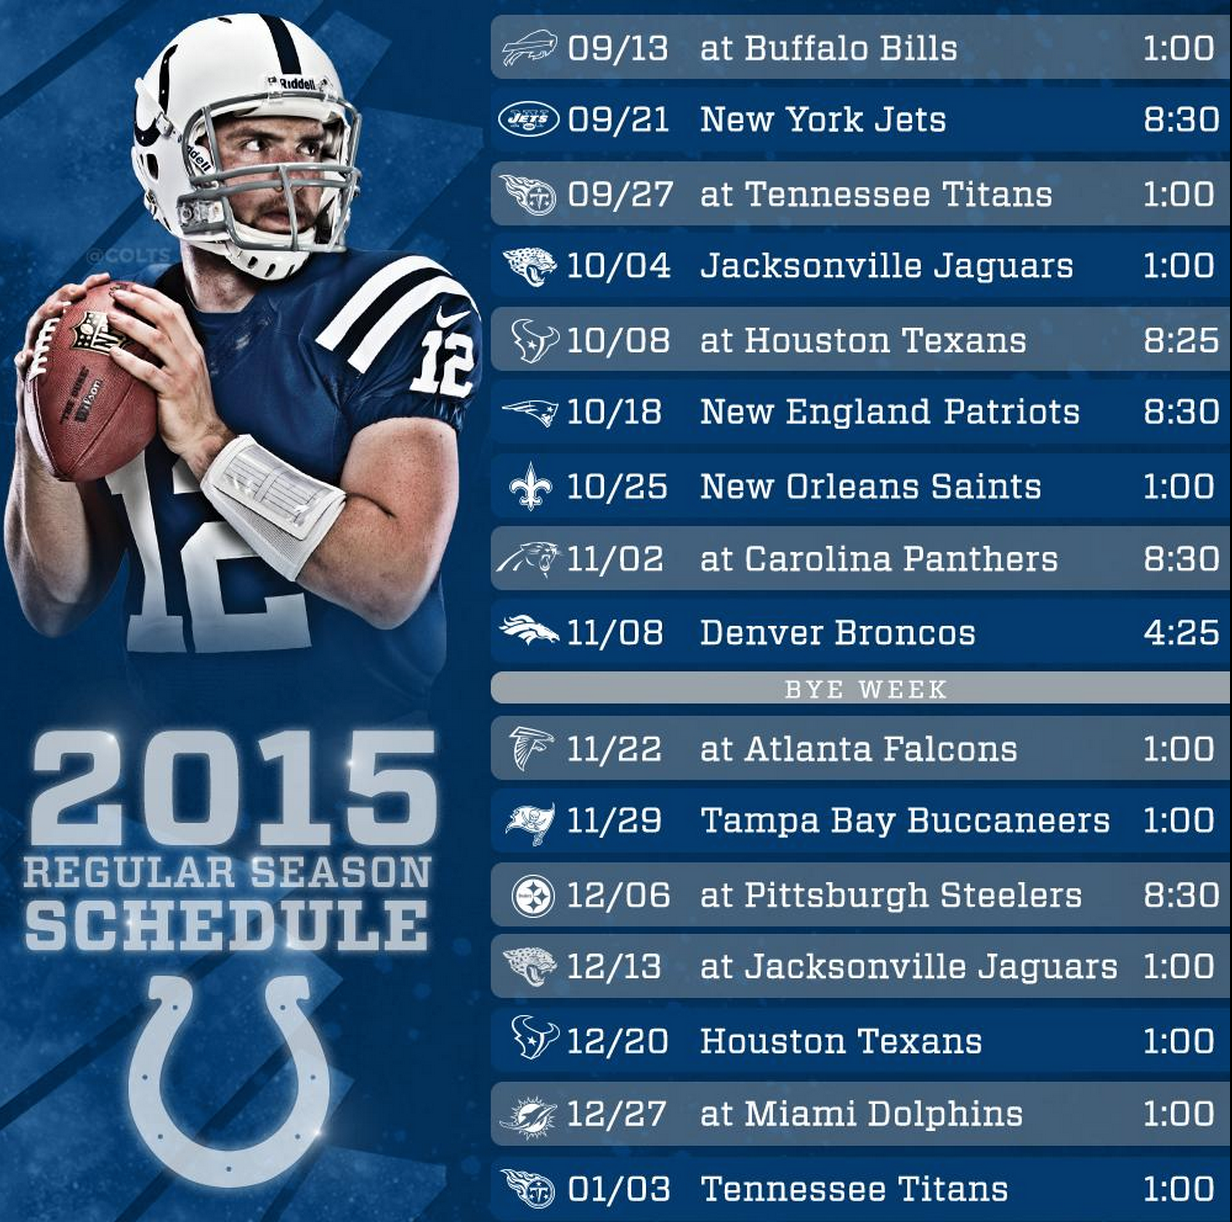 image regarding Colts Schedule Printable called Indianapolis Colts 2015 Program Disclosed